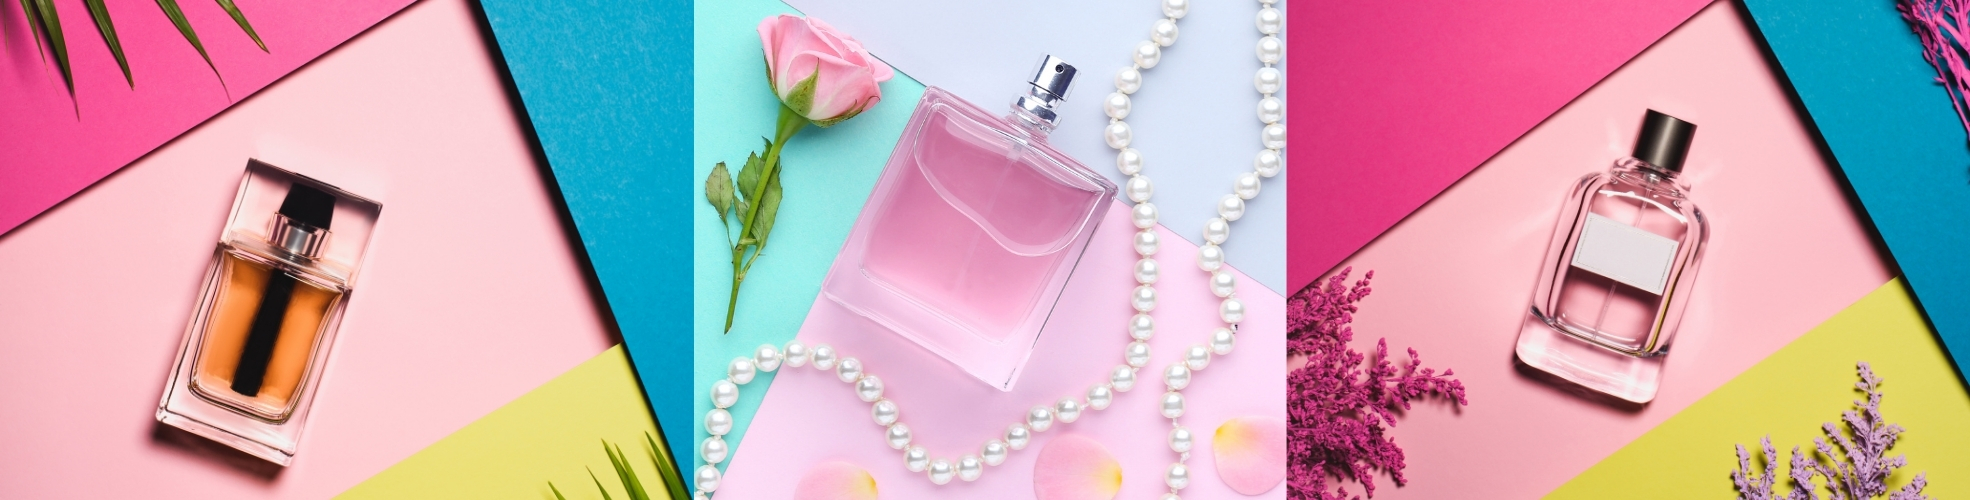 Browse our range of wholesale perfumes and fragrances for men and ladies at affordable prices.